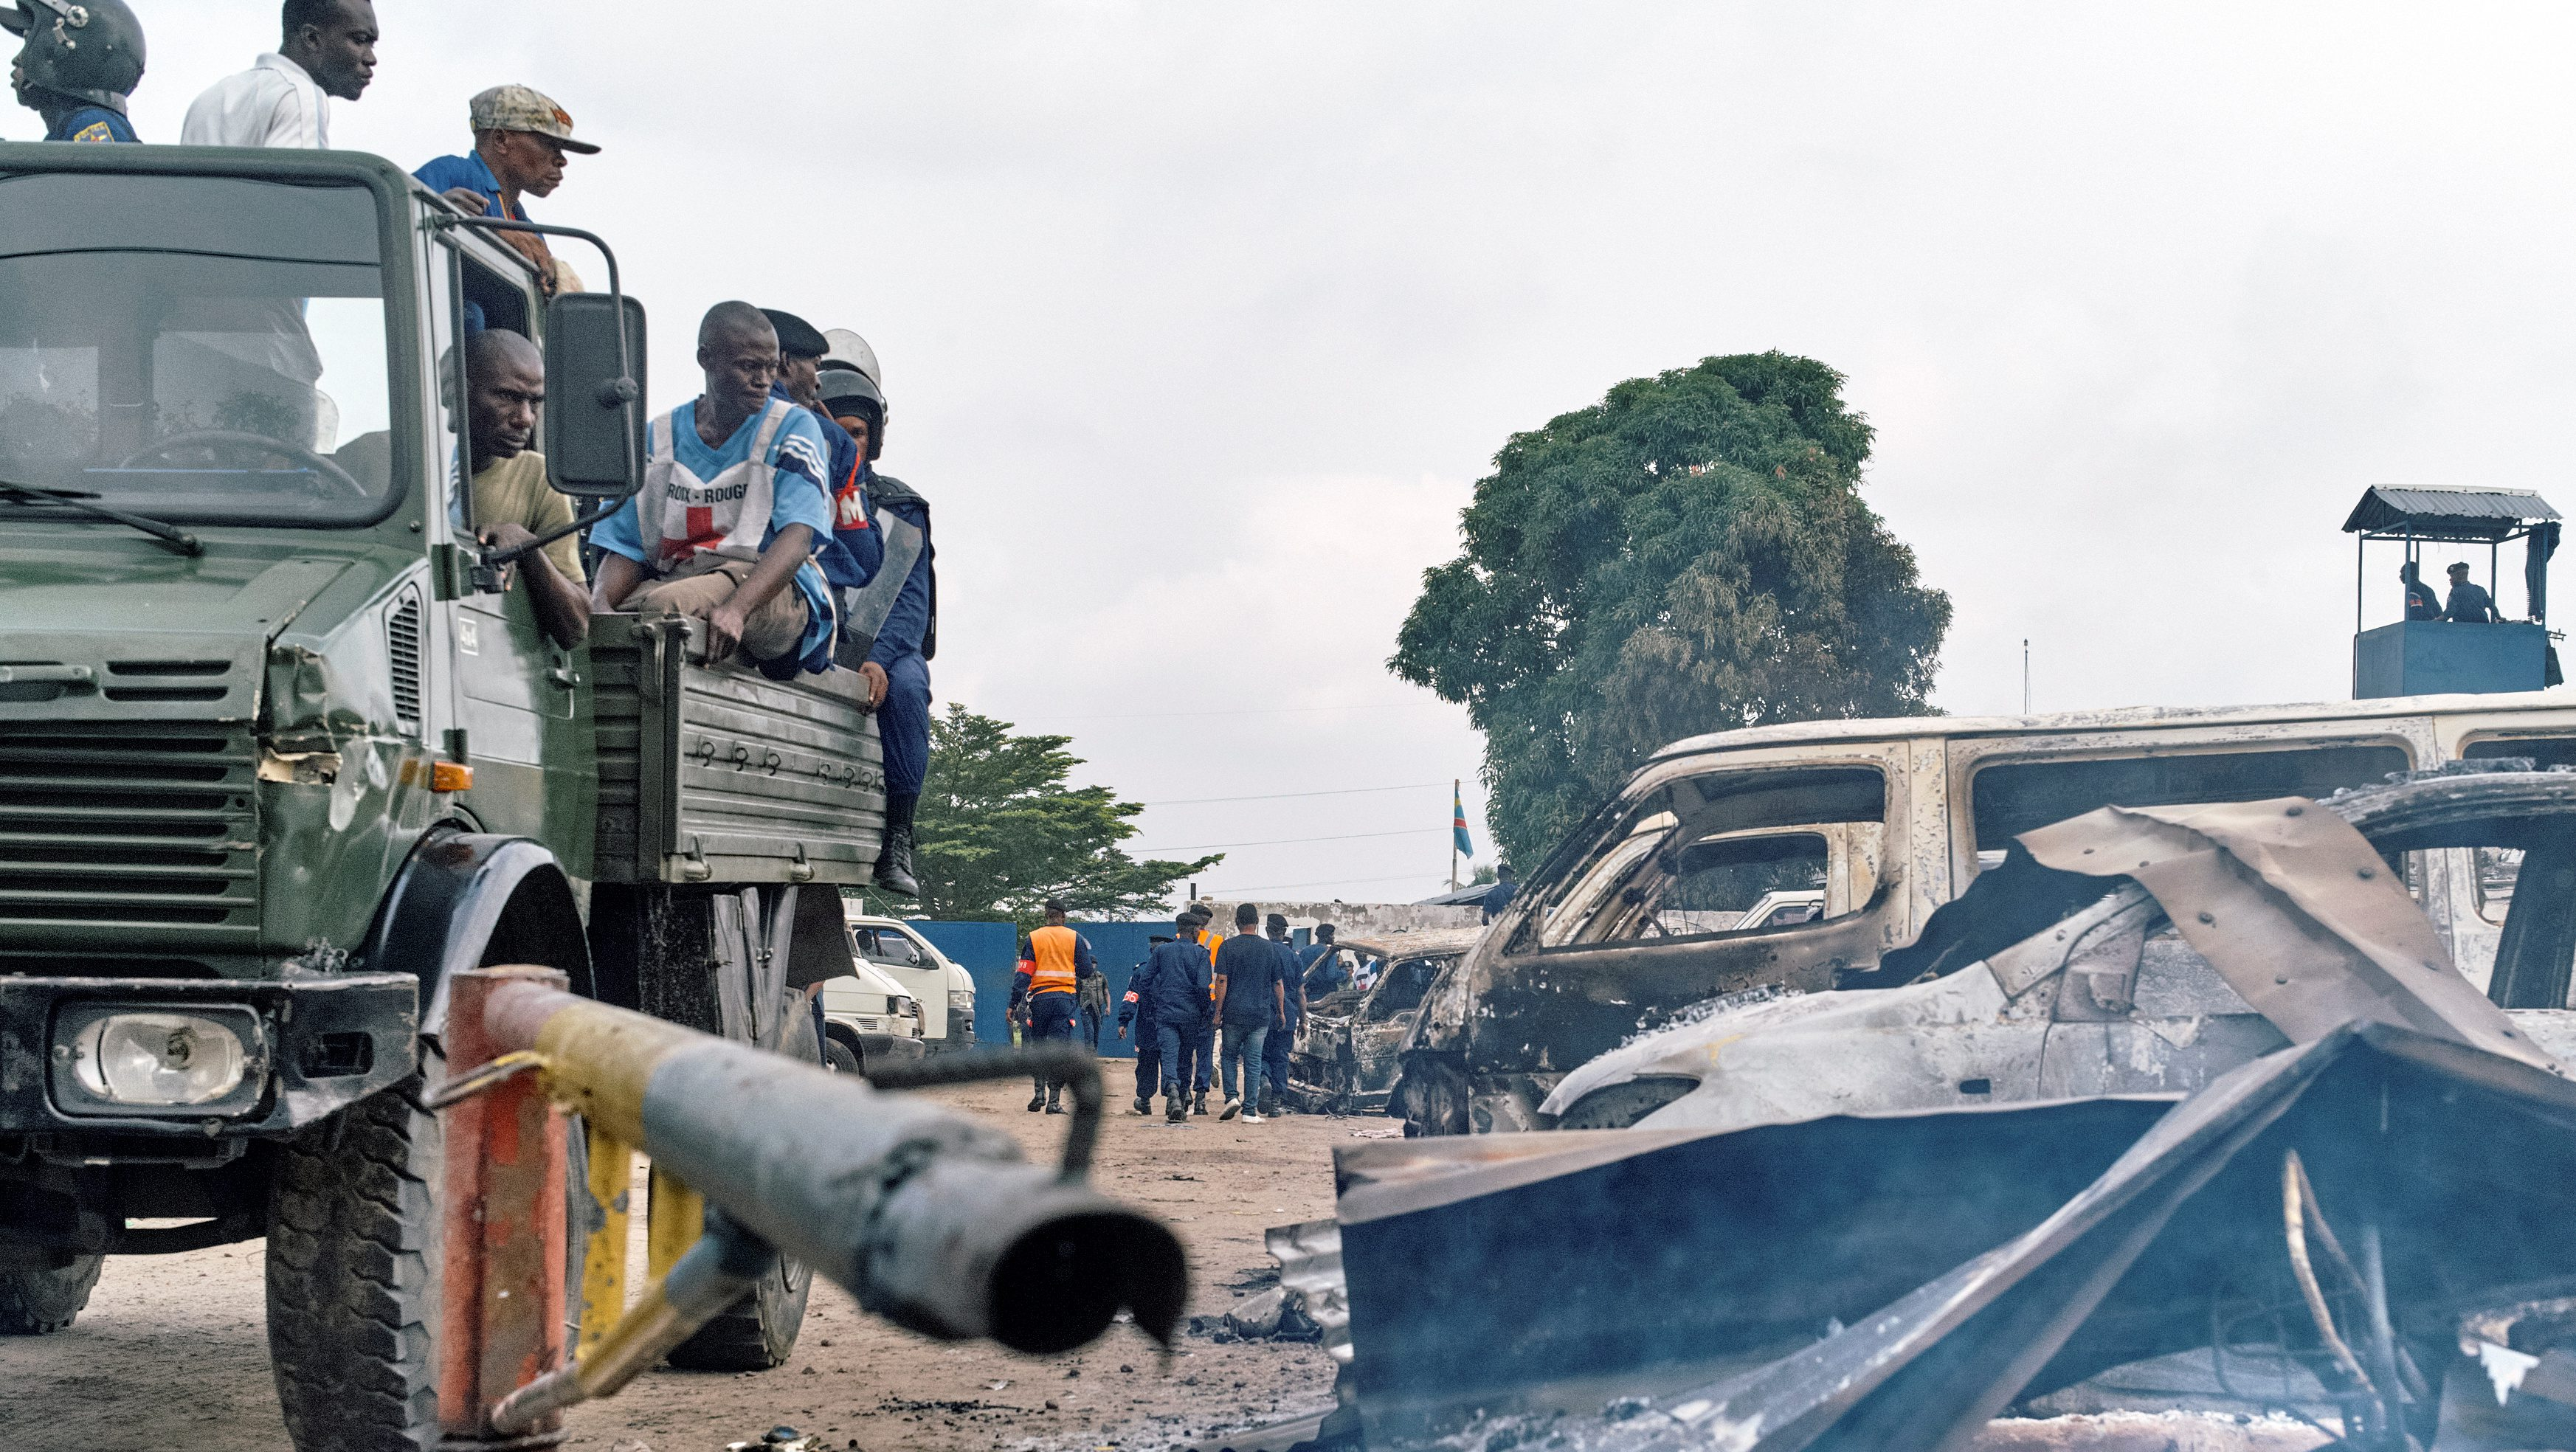 Security personnel sitting on a truck watch burned vehicles at the front gate of the Makala prison in Kinshasa